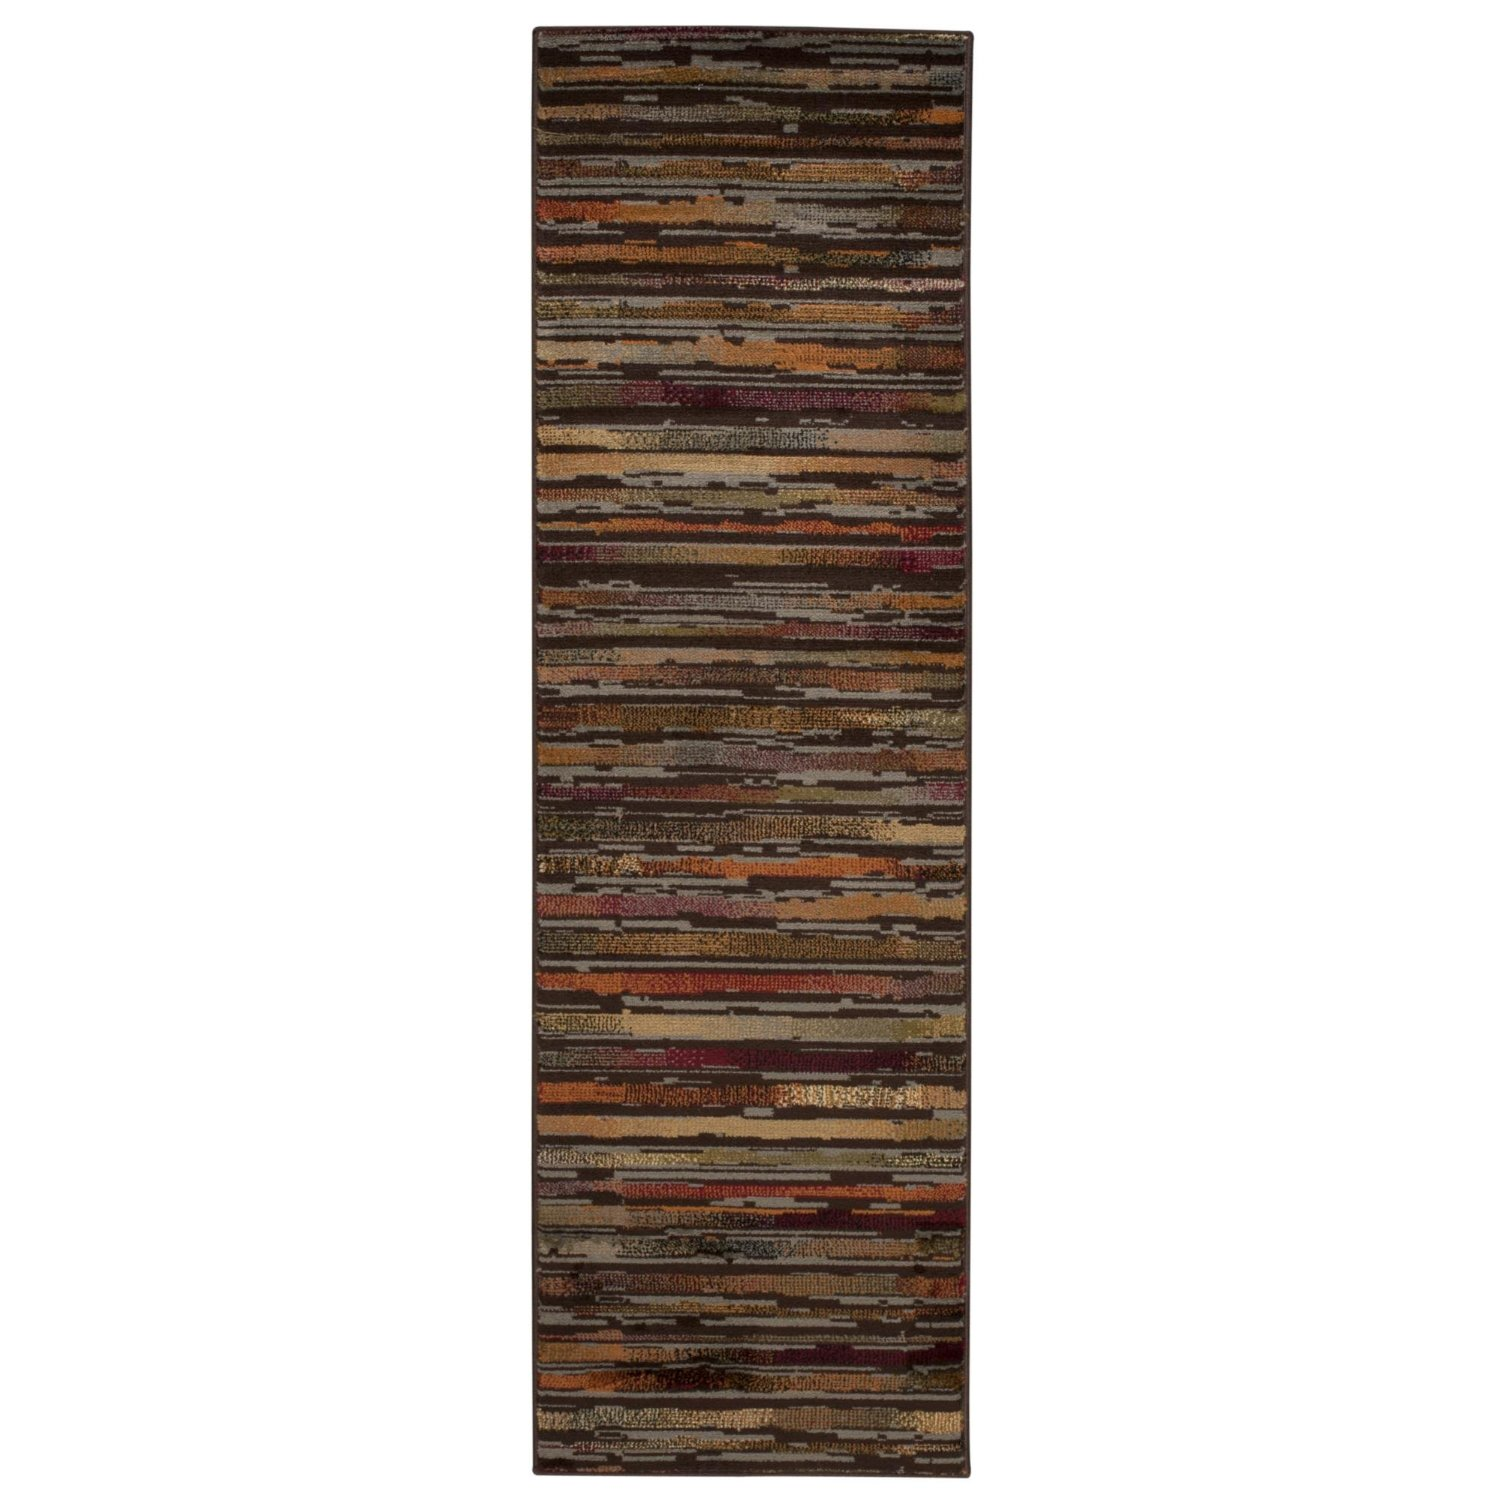 Rug Squared Mariposa Traditional Rug Runner (MAR15), 2-Feet 2-Inches by 7-Feet 3-Inches, Multicolor